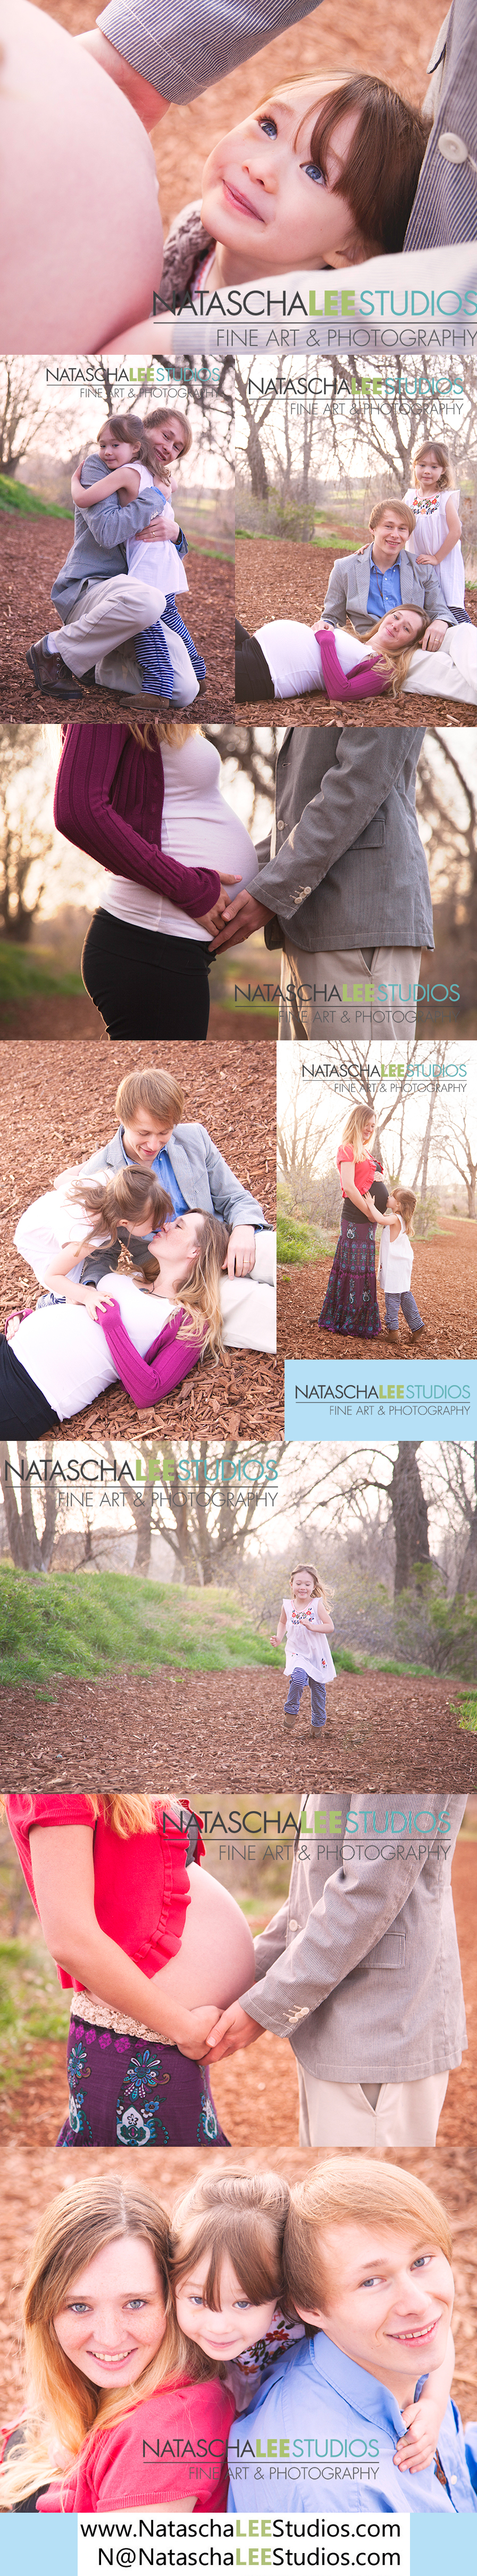 Maternity and Baby Photography by Broomfield Colorado Artist Natascha Lee Studios